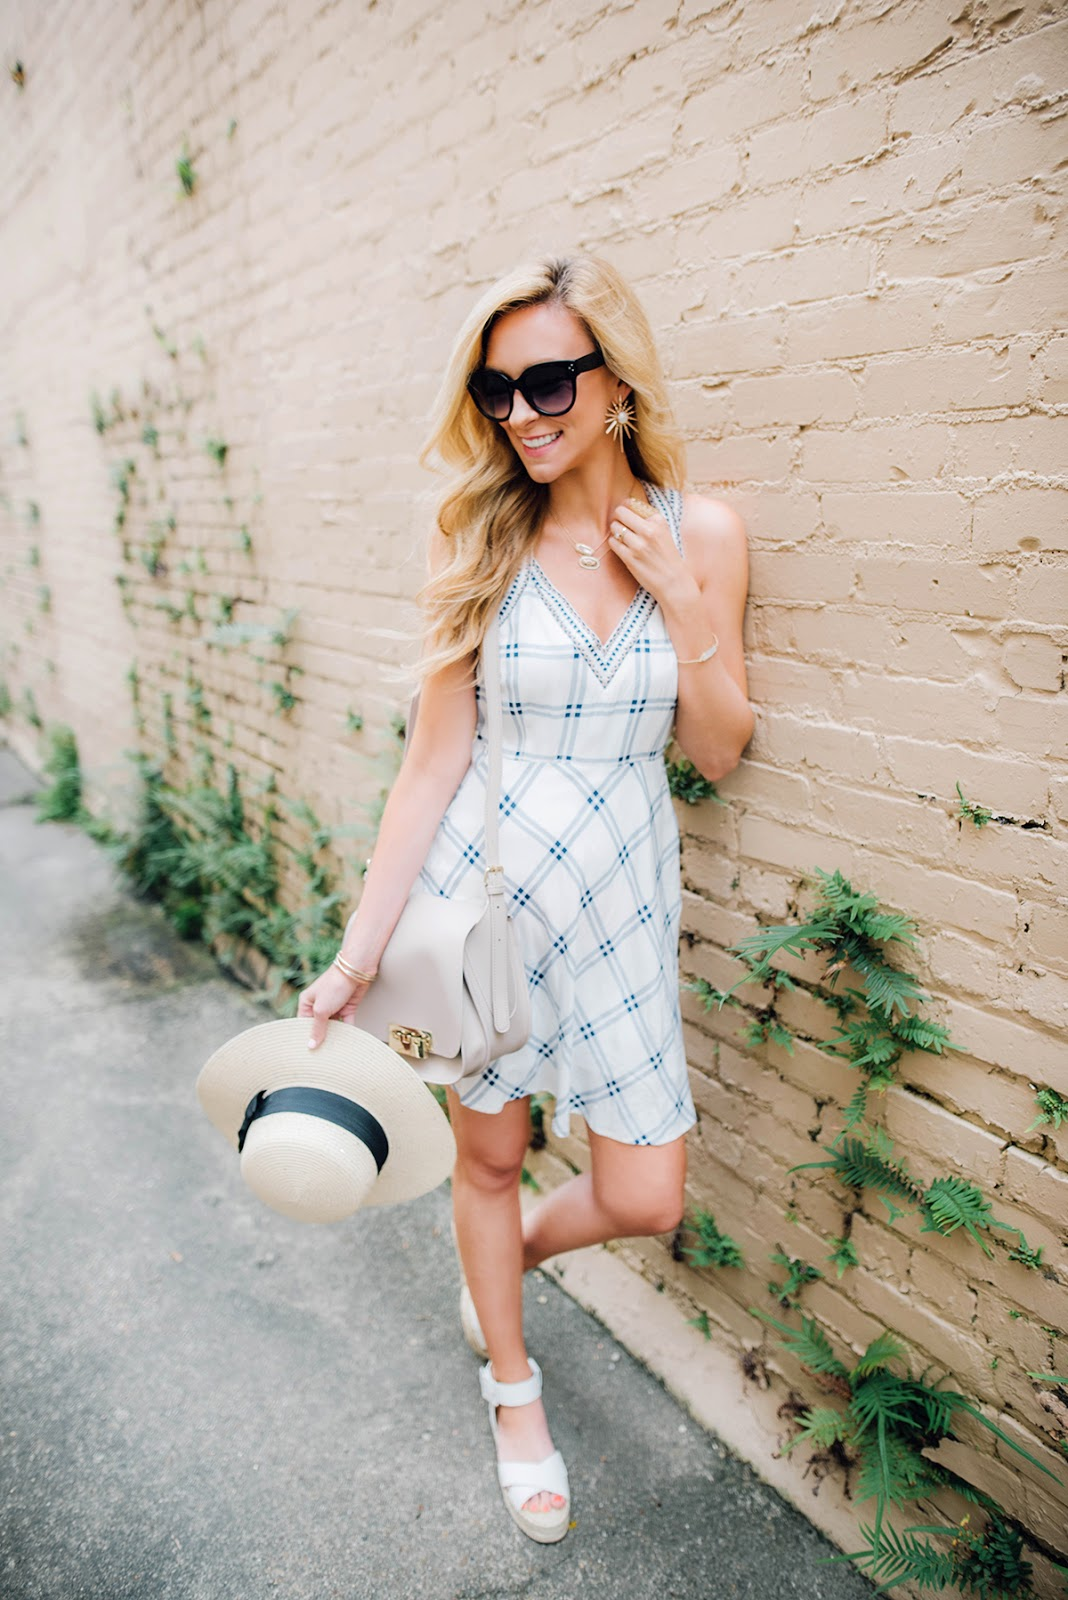 summer time vacation dress inspiration